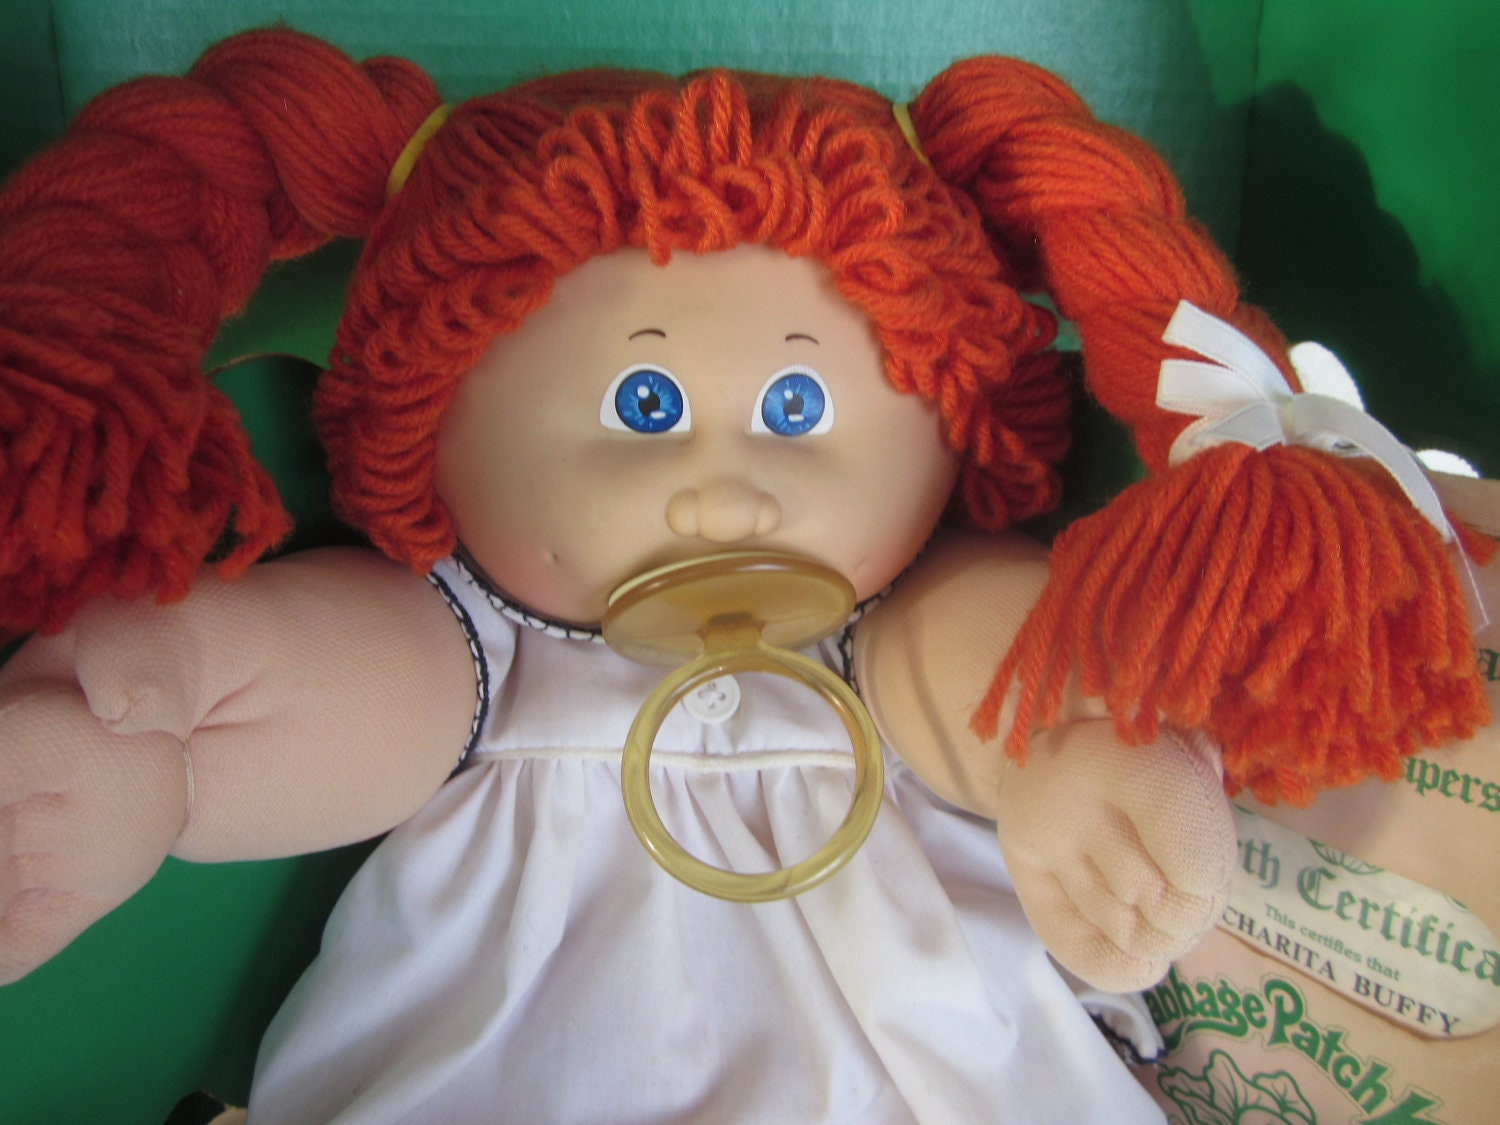 Vintage 1984 Cabbage Patch Kids Doll Charita Buffy By